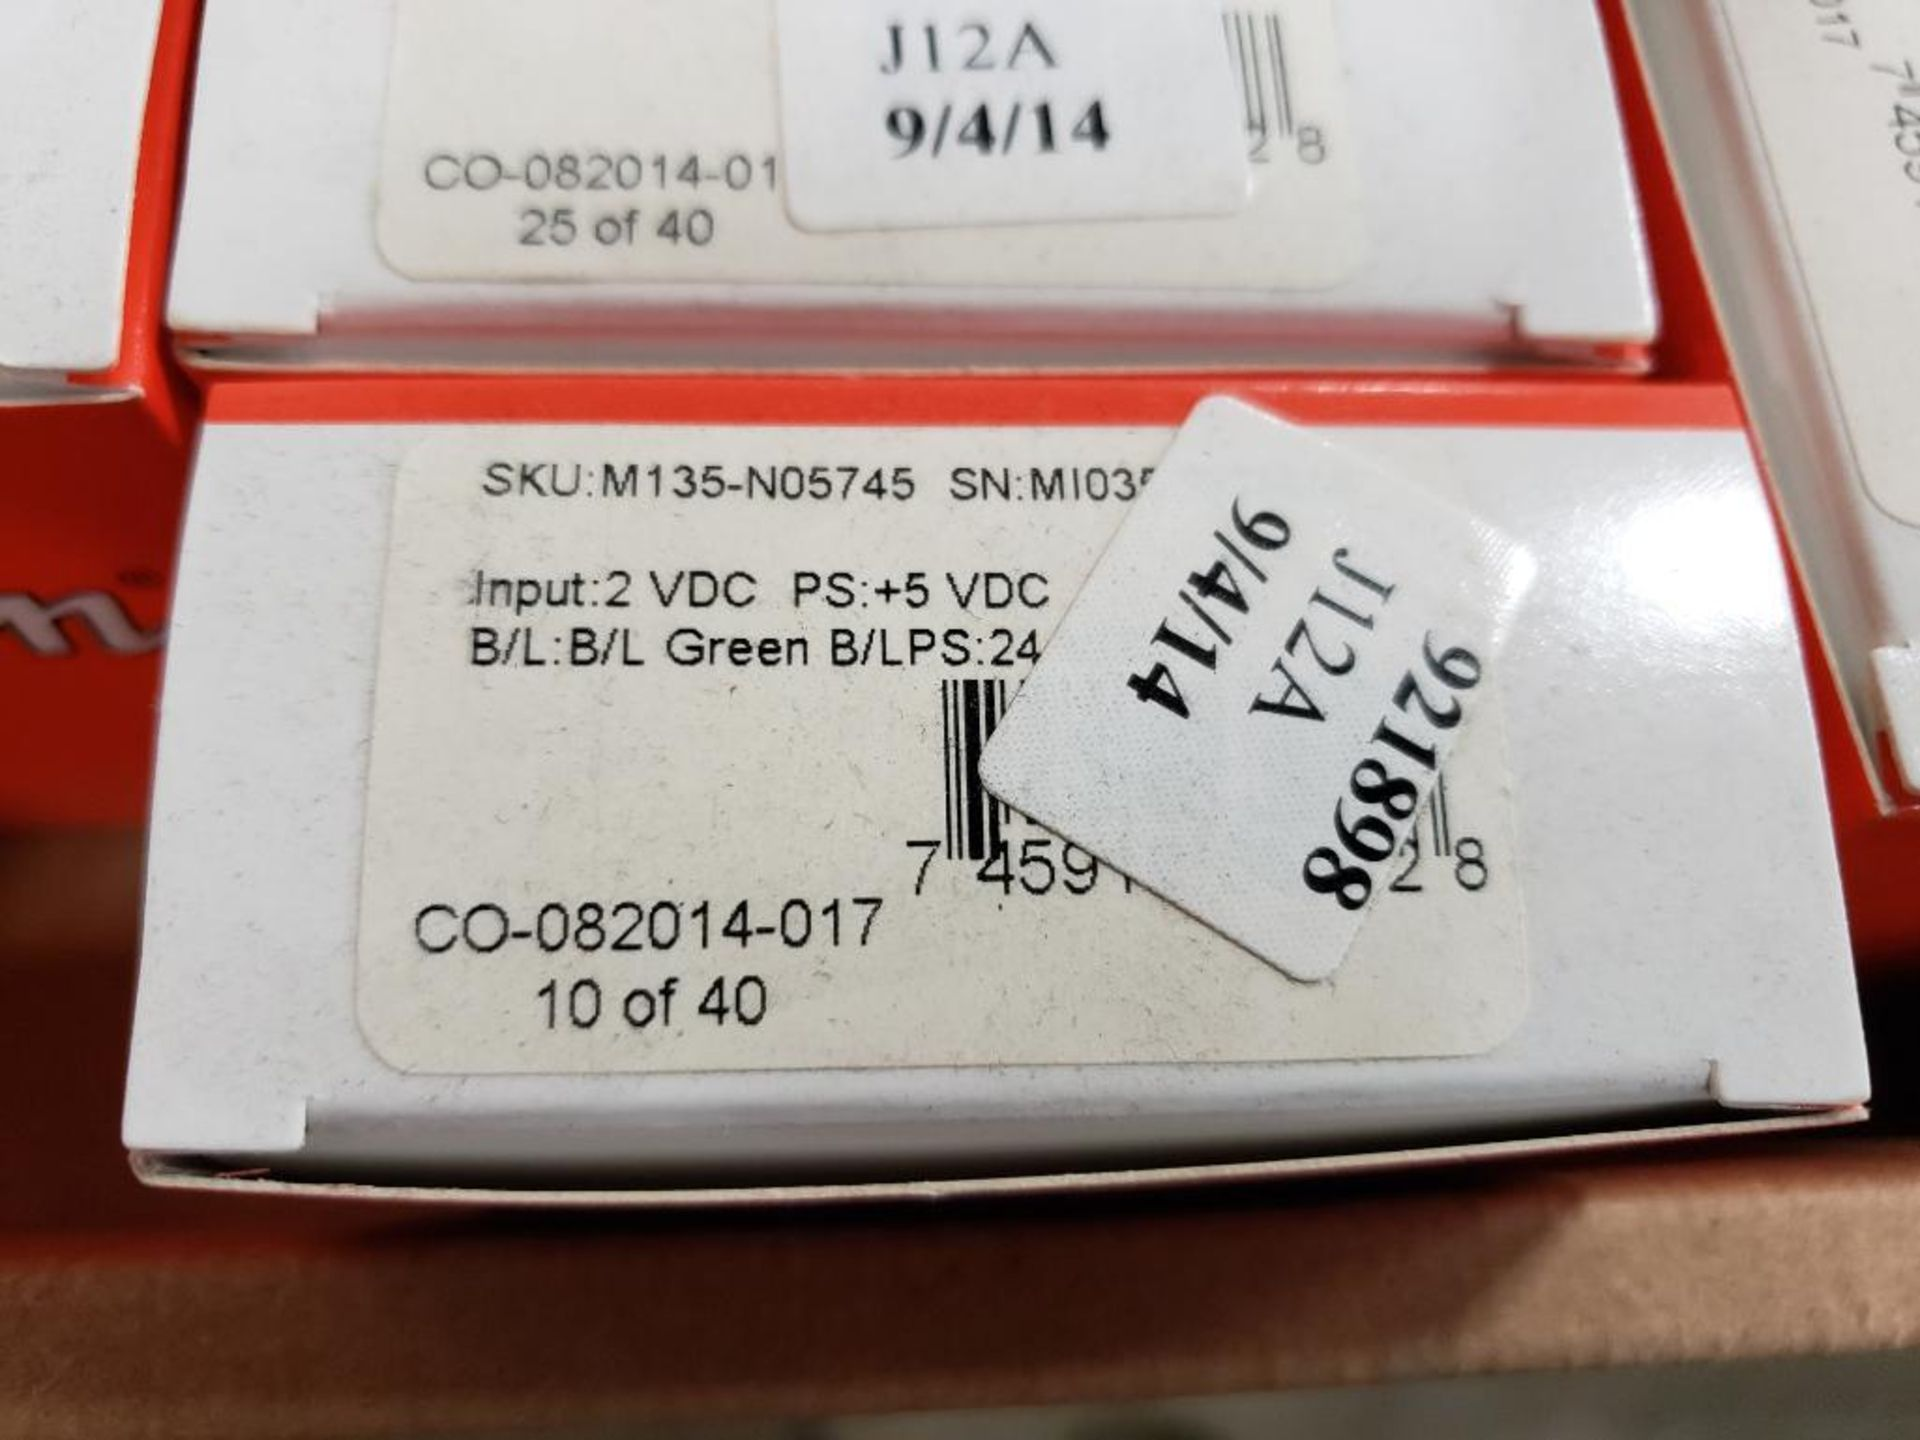 Qty 24 - Simpson gauge model CO-082014-014. New in box. - Image 3 of 3